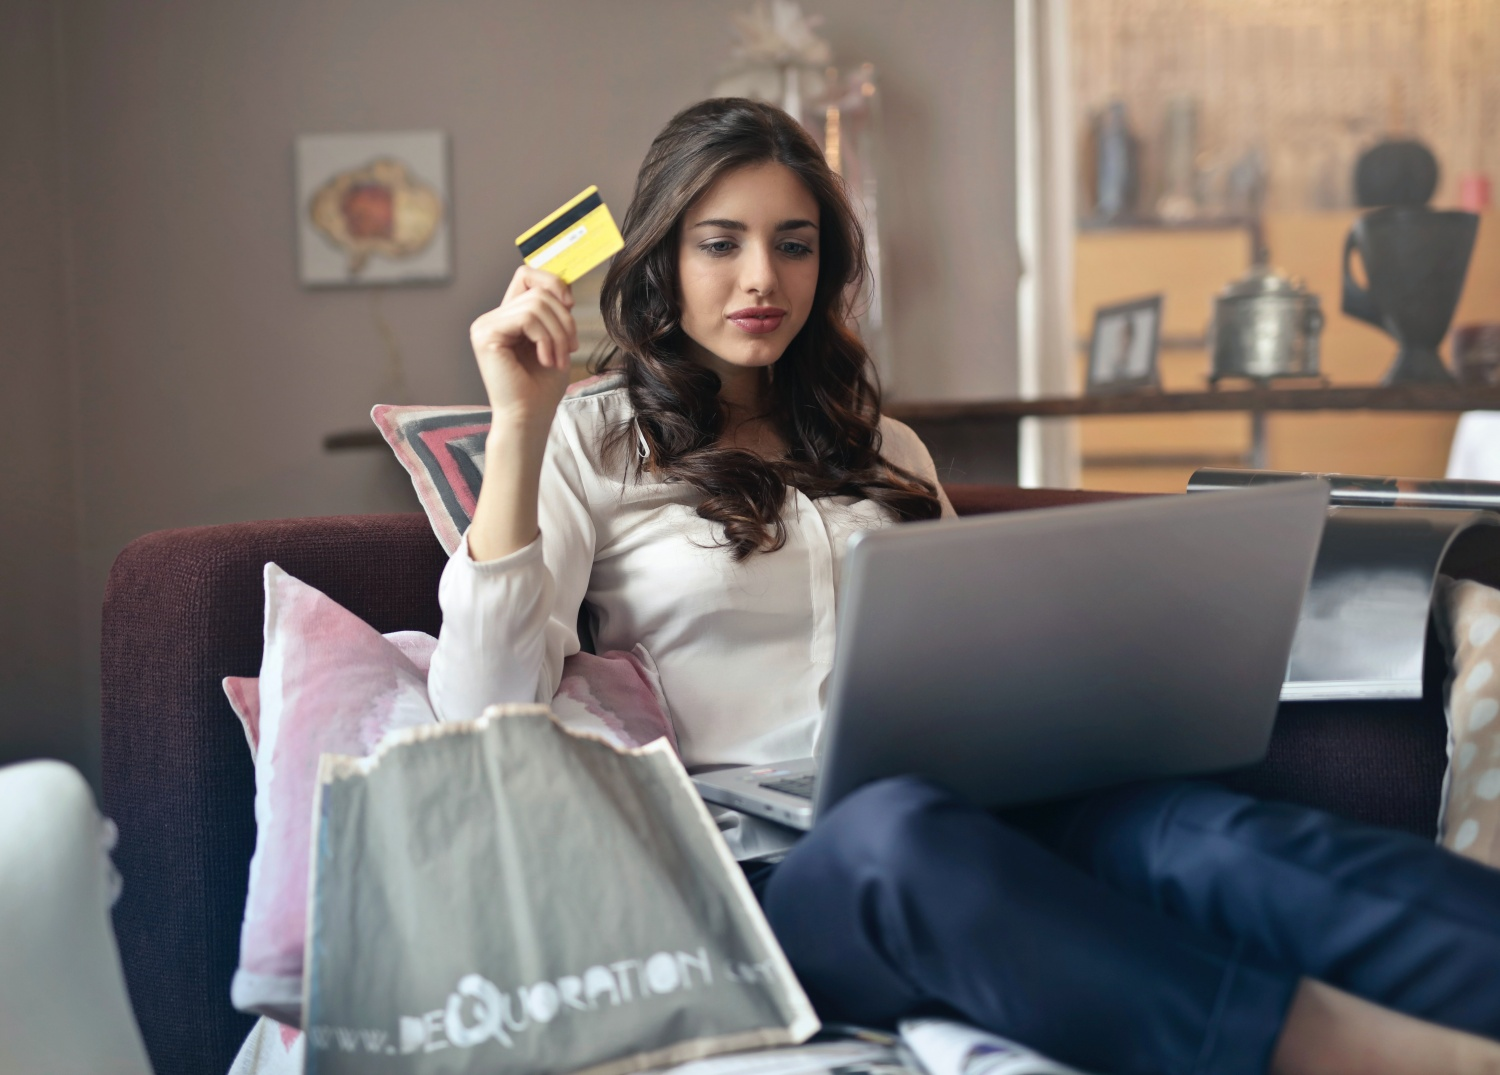 Where Can You Select the Best Credit Cards in India?